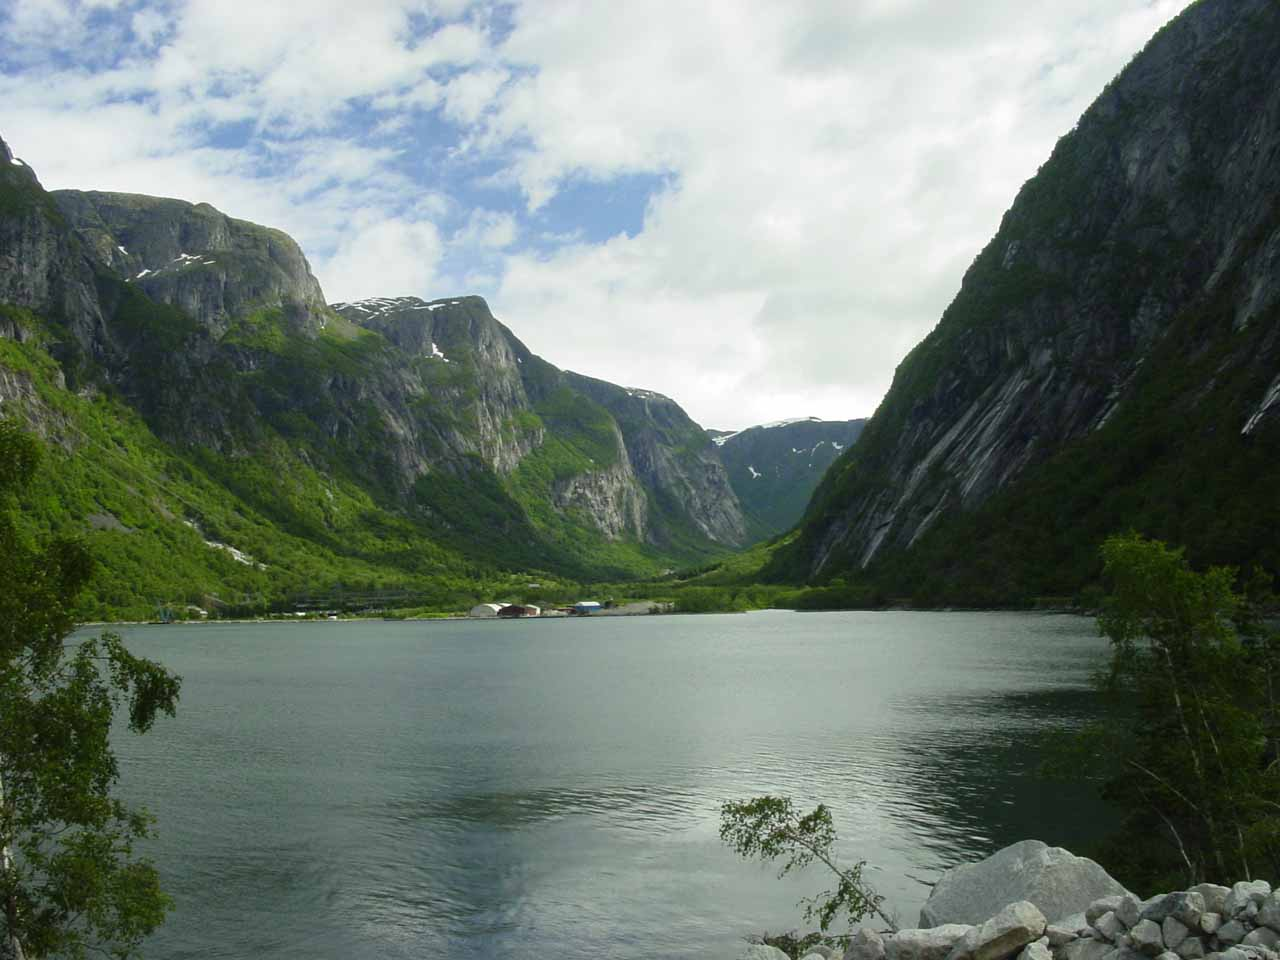 This was the view of Simadalen Valley as we approached it near the head of Simadalsfjorden. The U shape of Simadalen Valley suggested that it was carved out with a glacier